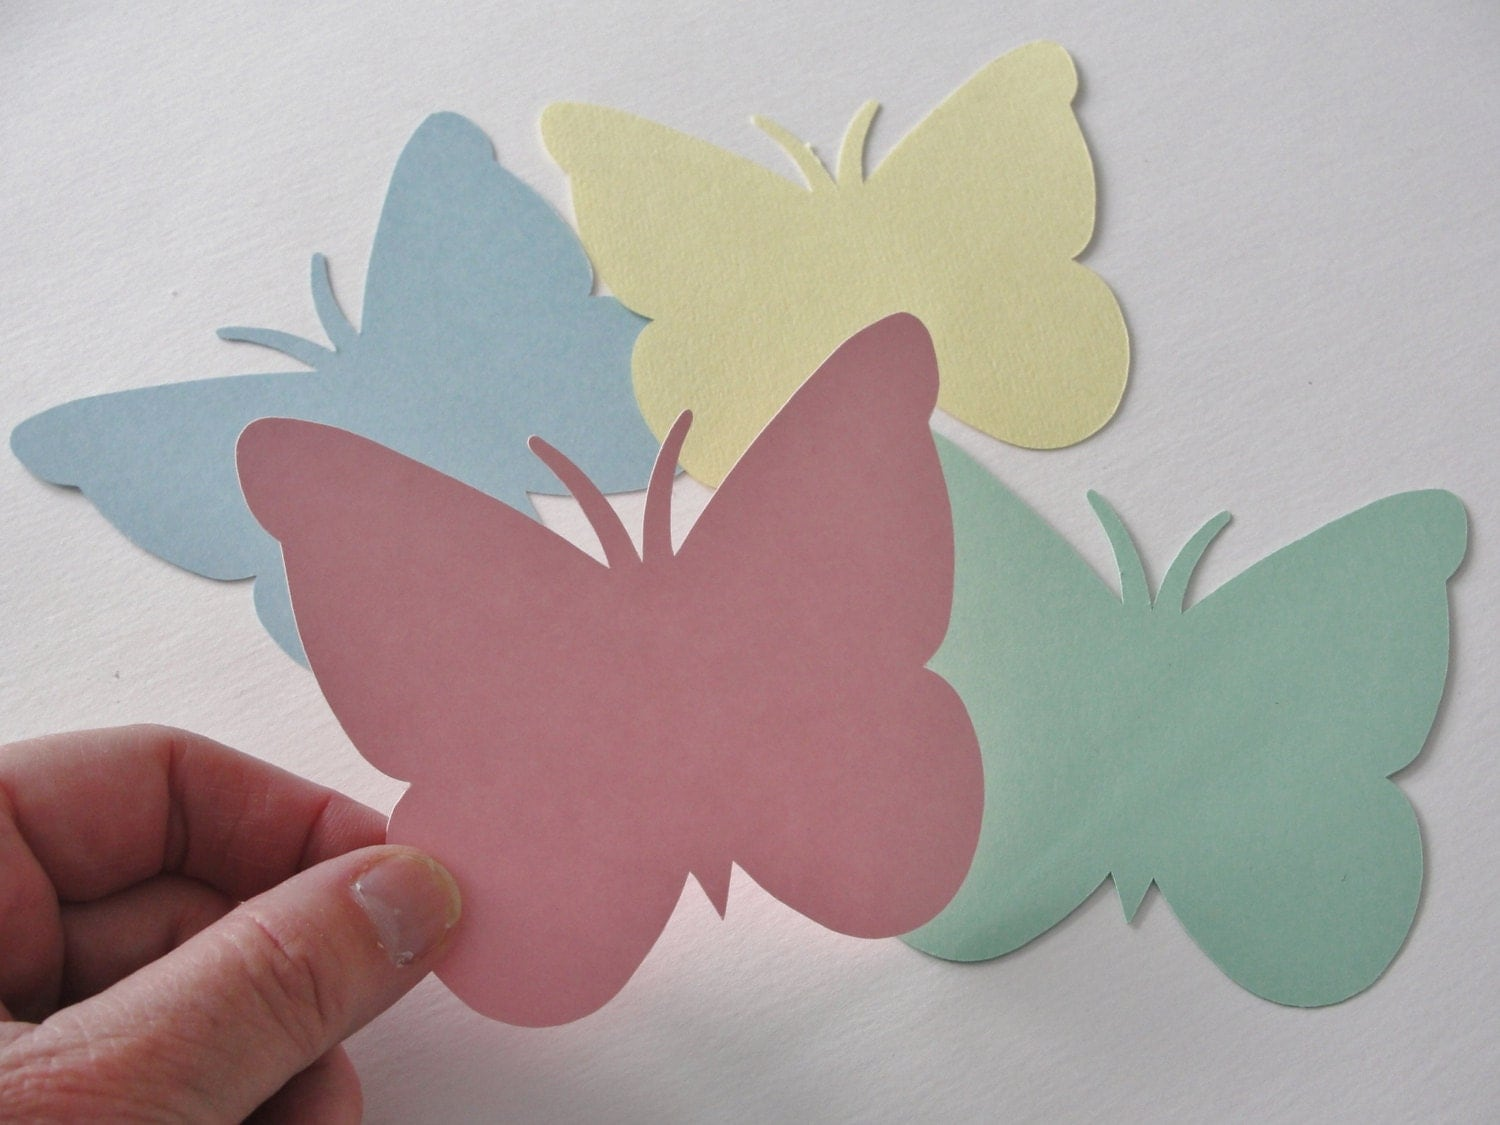 Butterfly paper cutting step by step images for Paper art butterfly